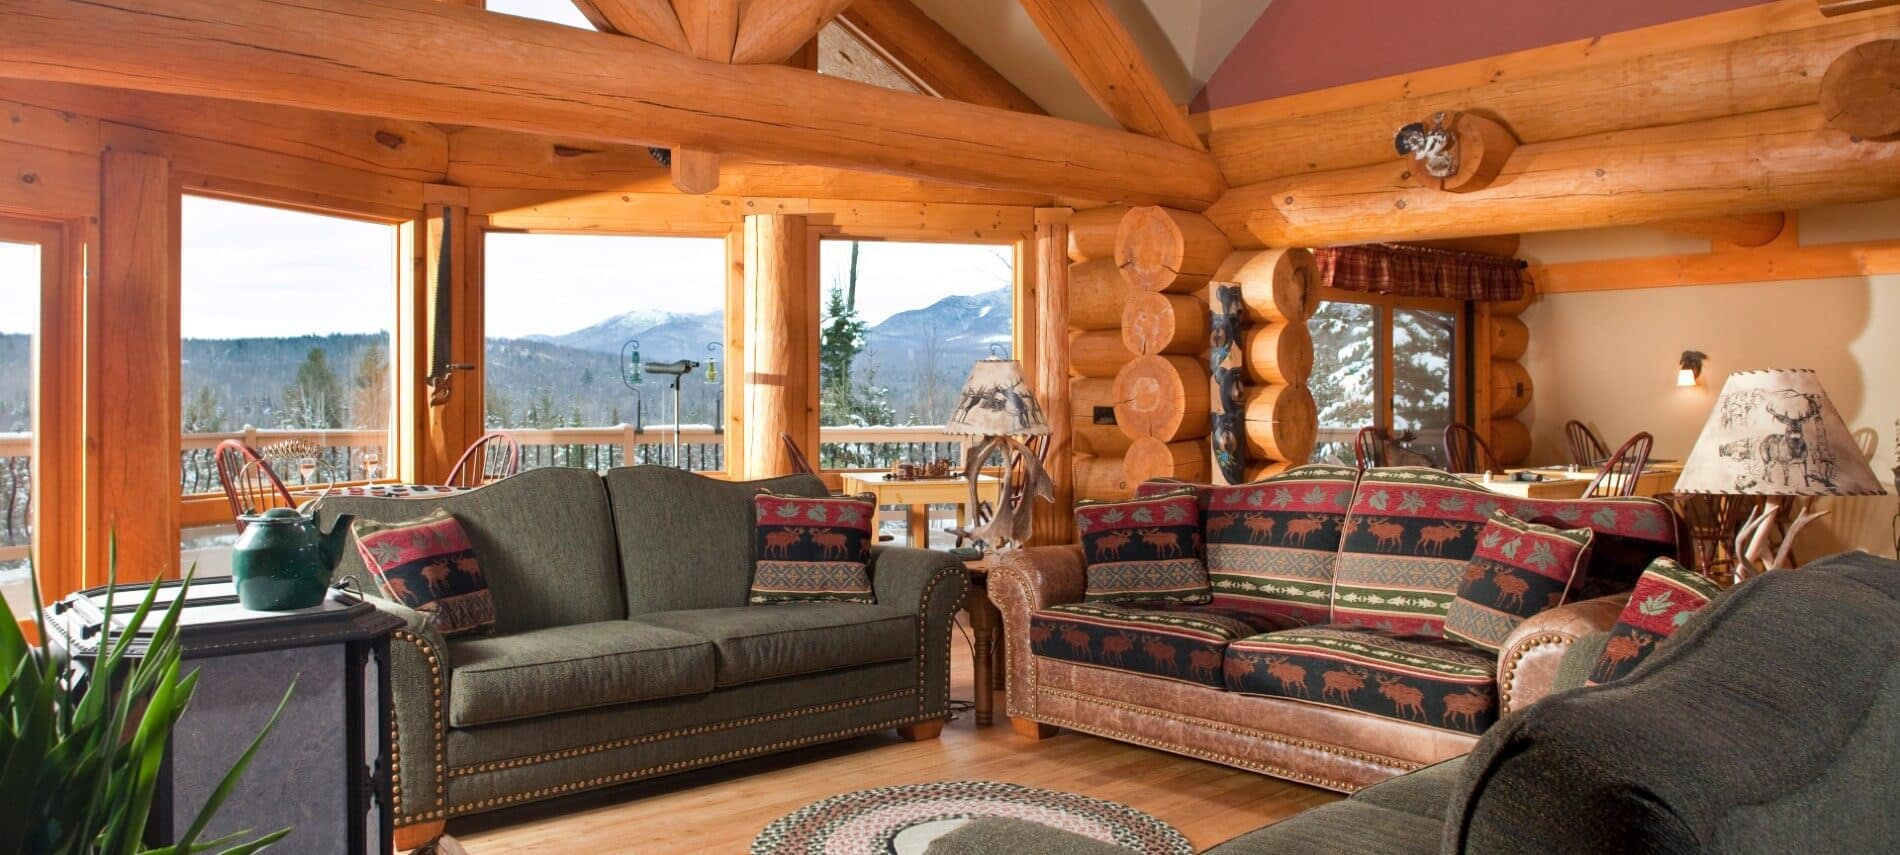 Living area of a log cabin home with couches, table and chairs and large picture windows